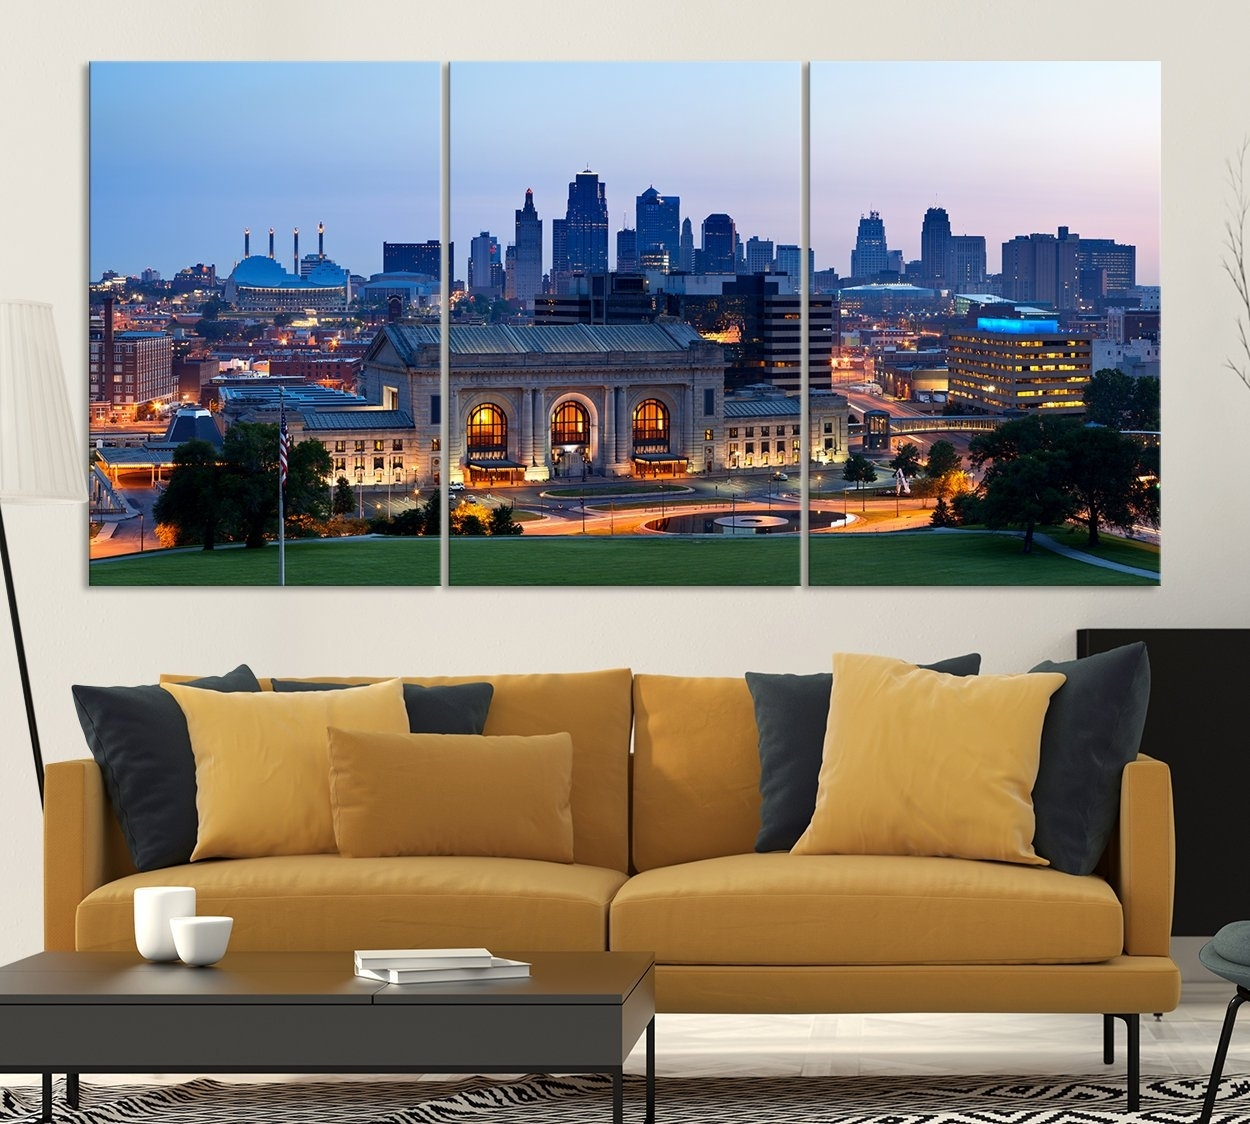 Kansas City Night Skyline Wall Art Canvas Print, Kansas City In Most Up To Date Kansas City Wall Art (View 15 of 20)